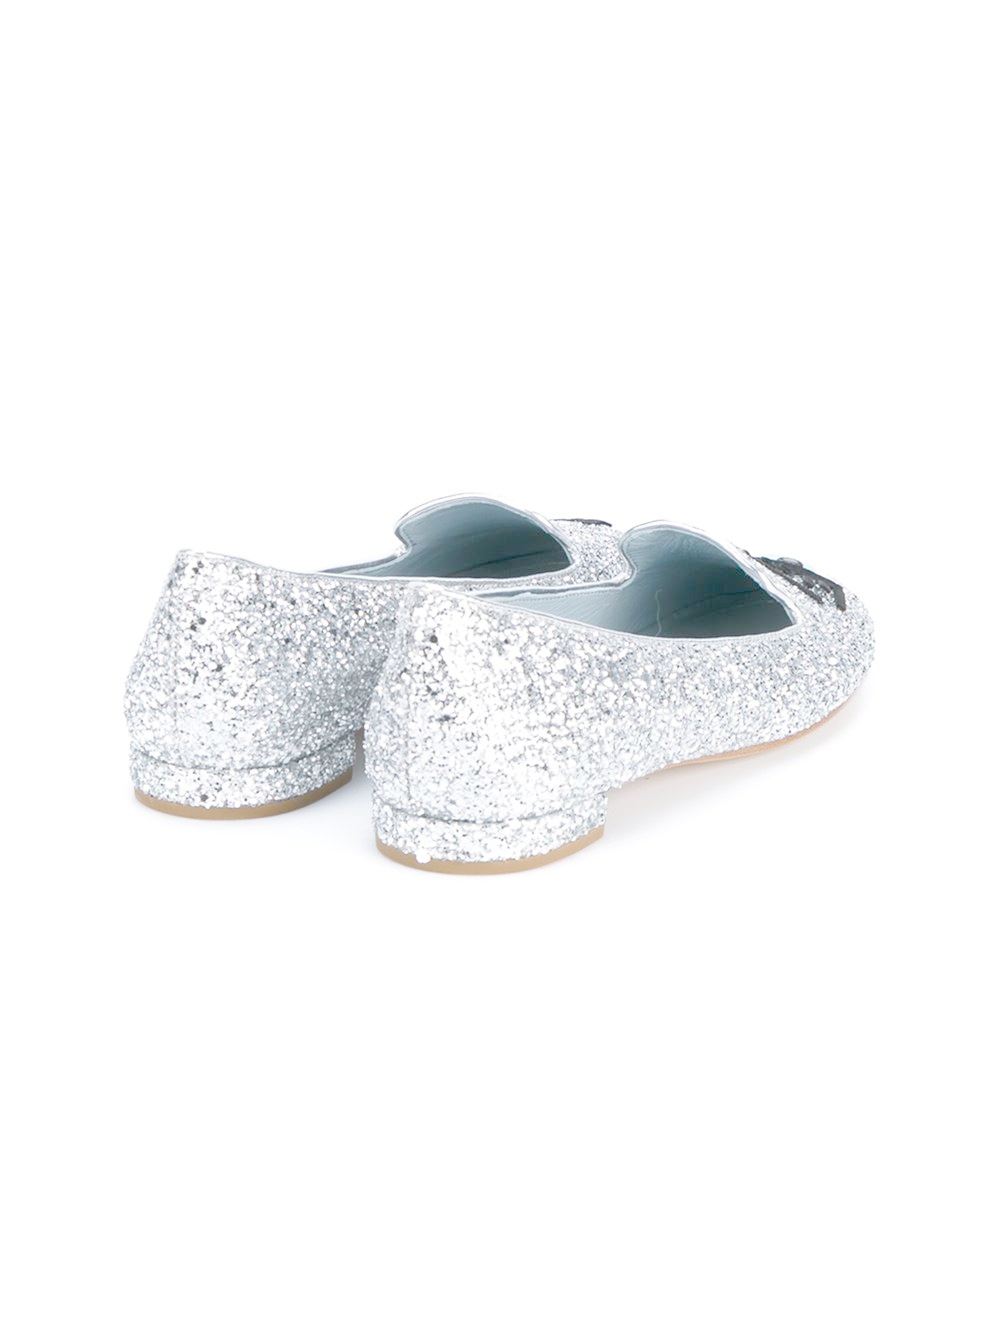 Chiara Ferragni Leather Flirting Glitter Slip-Ons in Metallic